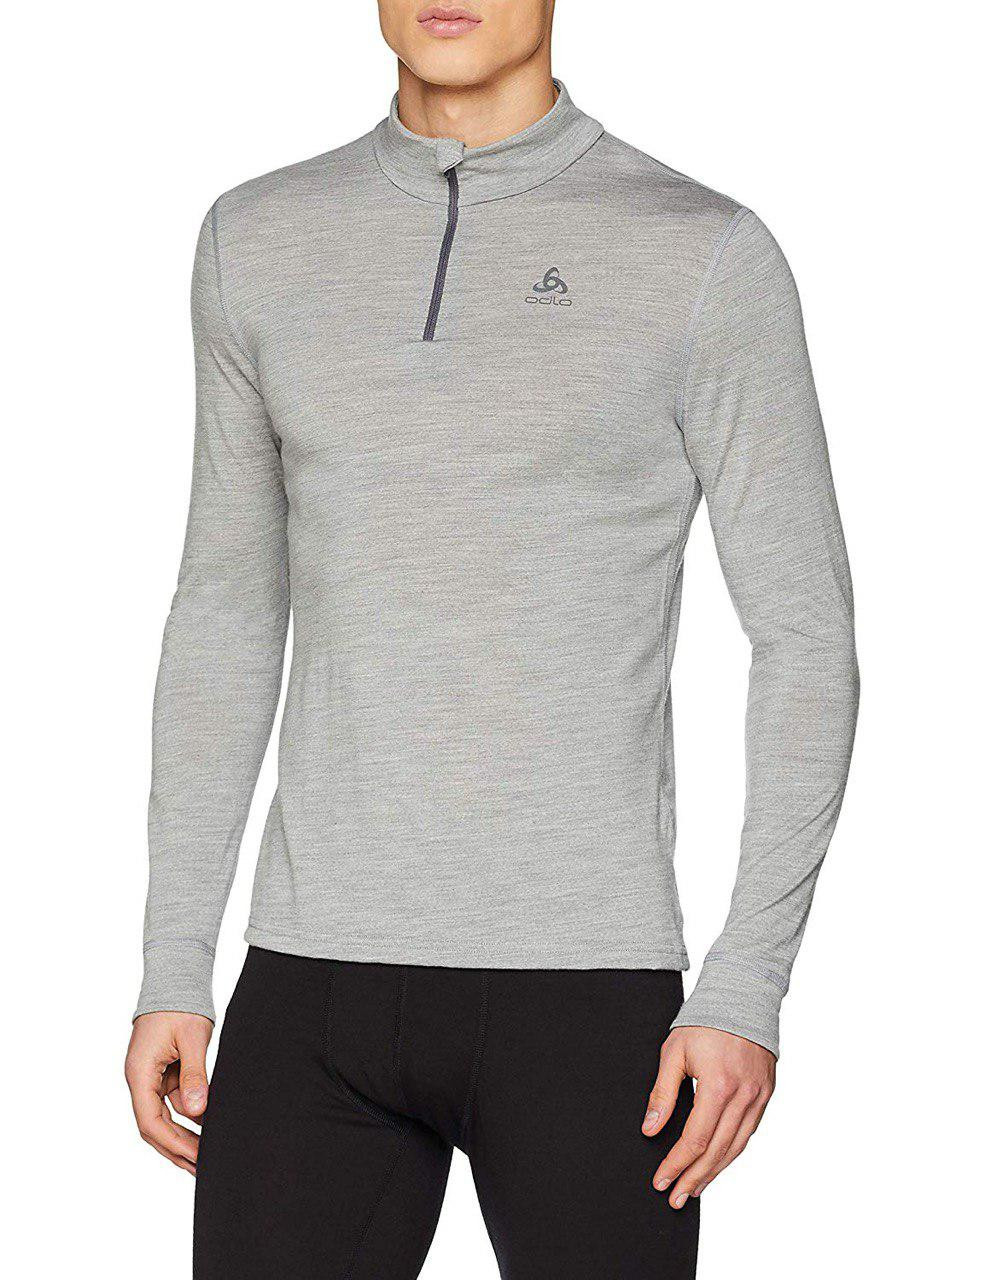 Термофутболка Odlo L/S Turtle Neck 1/2 Zip Natural 100% Merino Warm (110802 Grey Melange L)